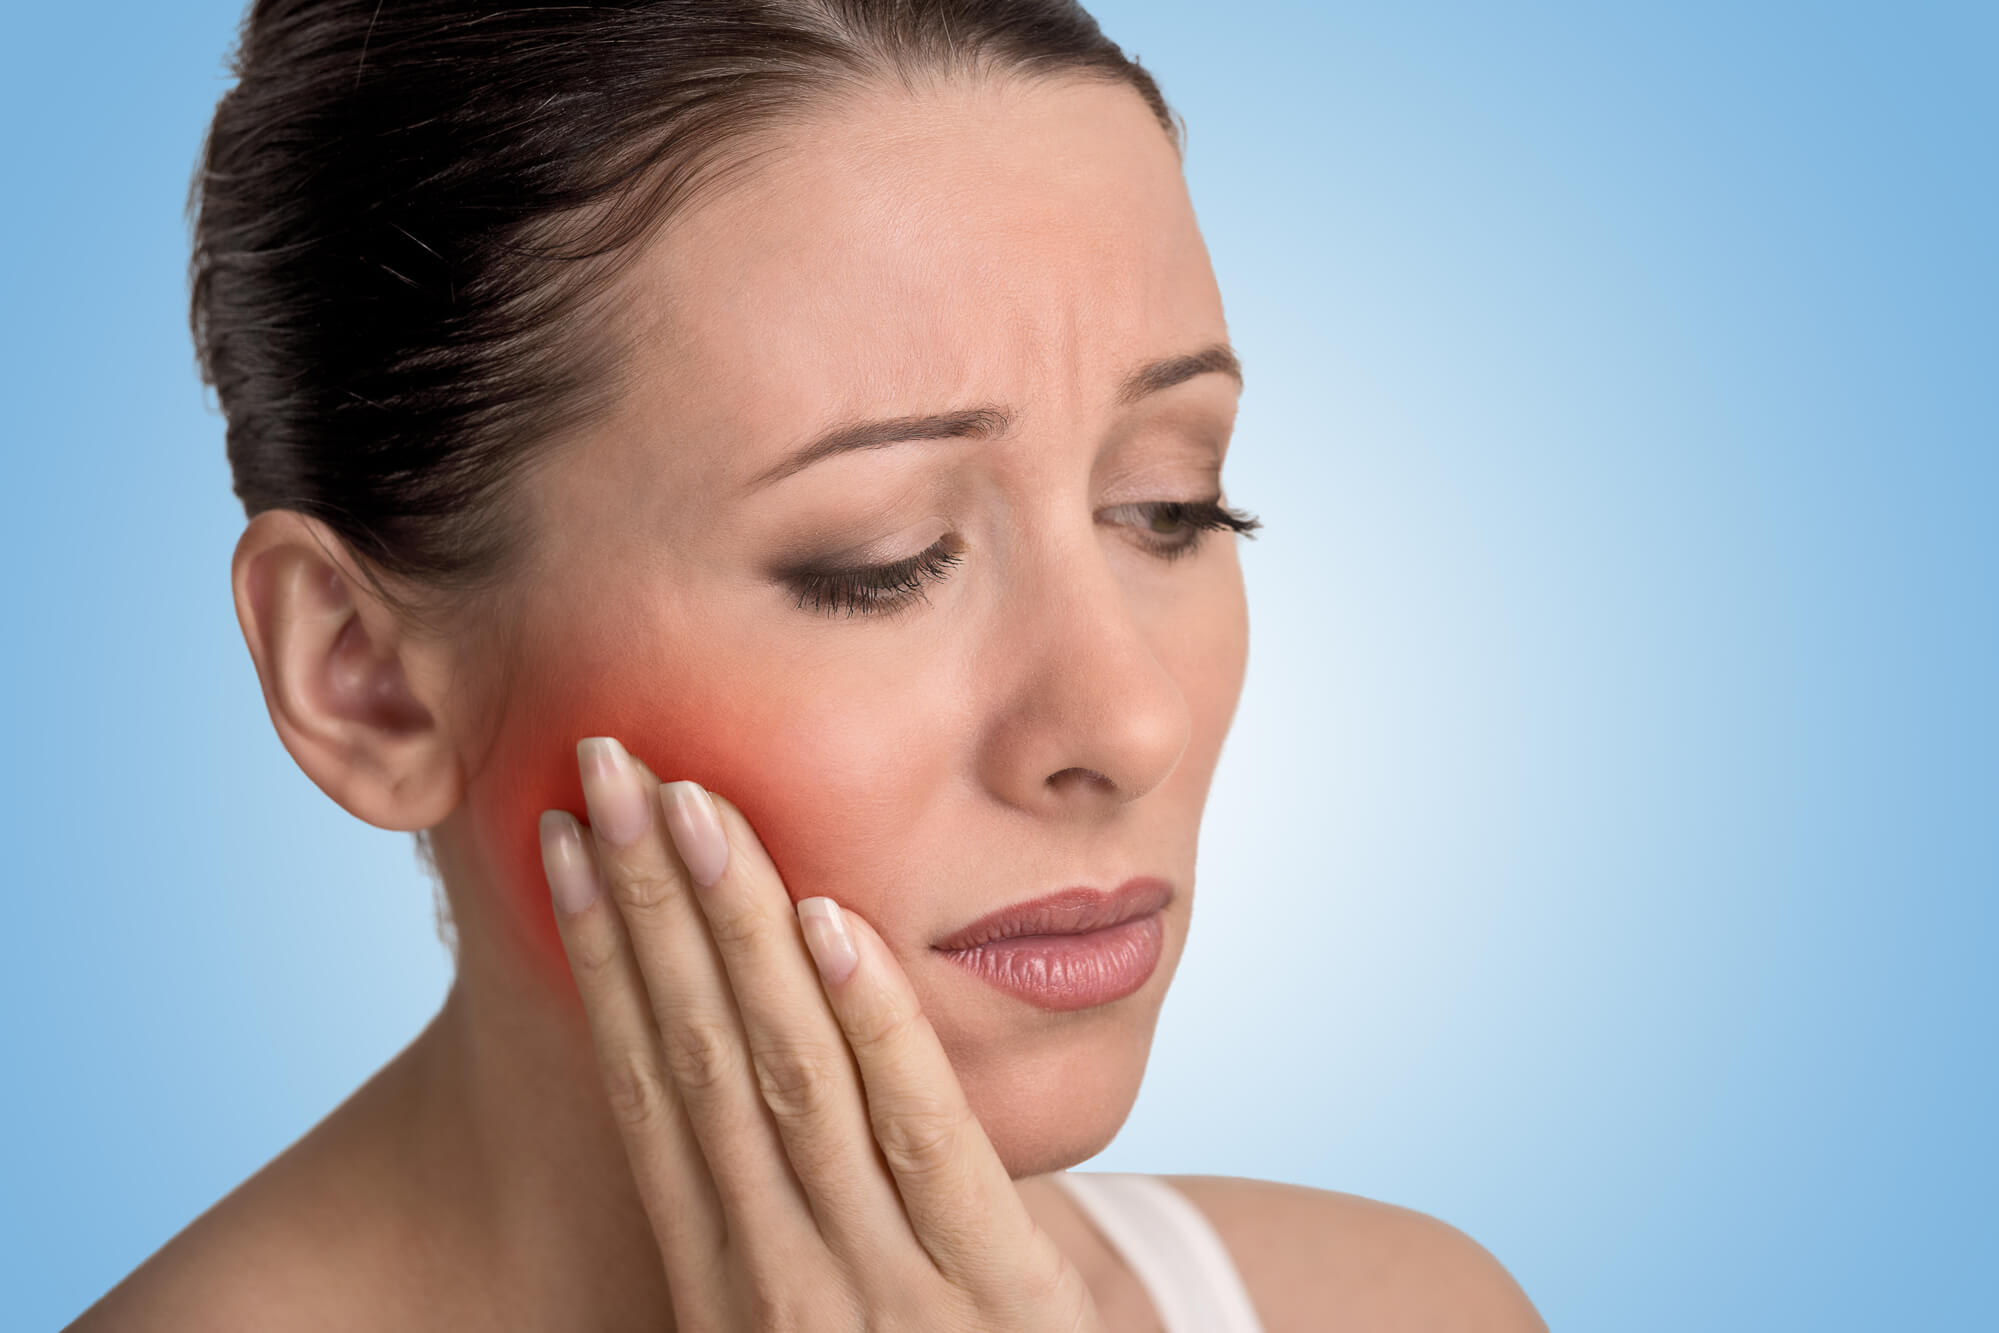 Where to find Reliable Endodontist 23228?